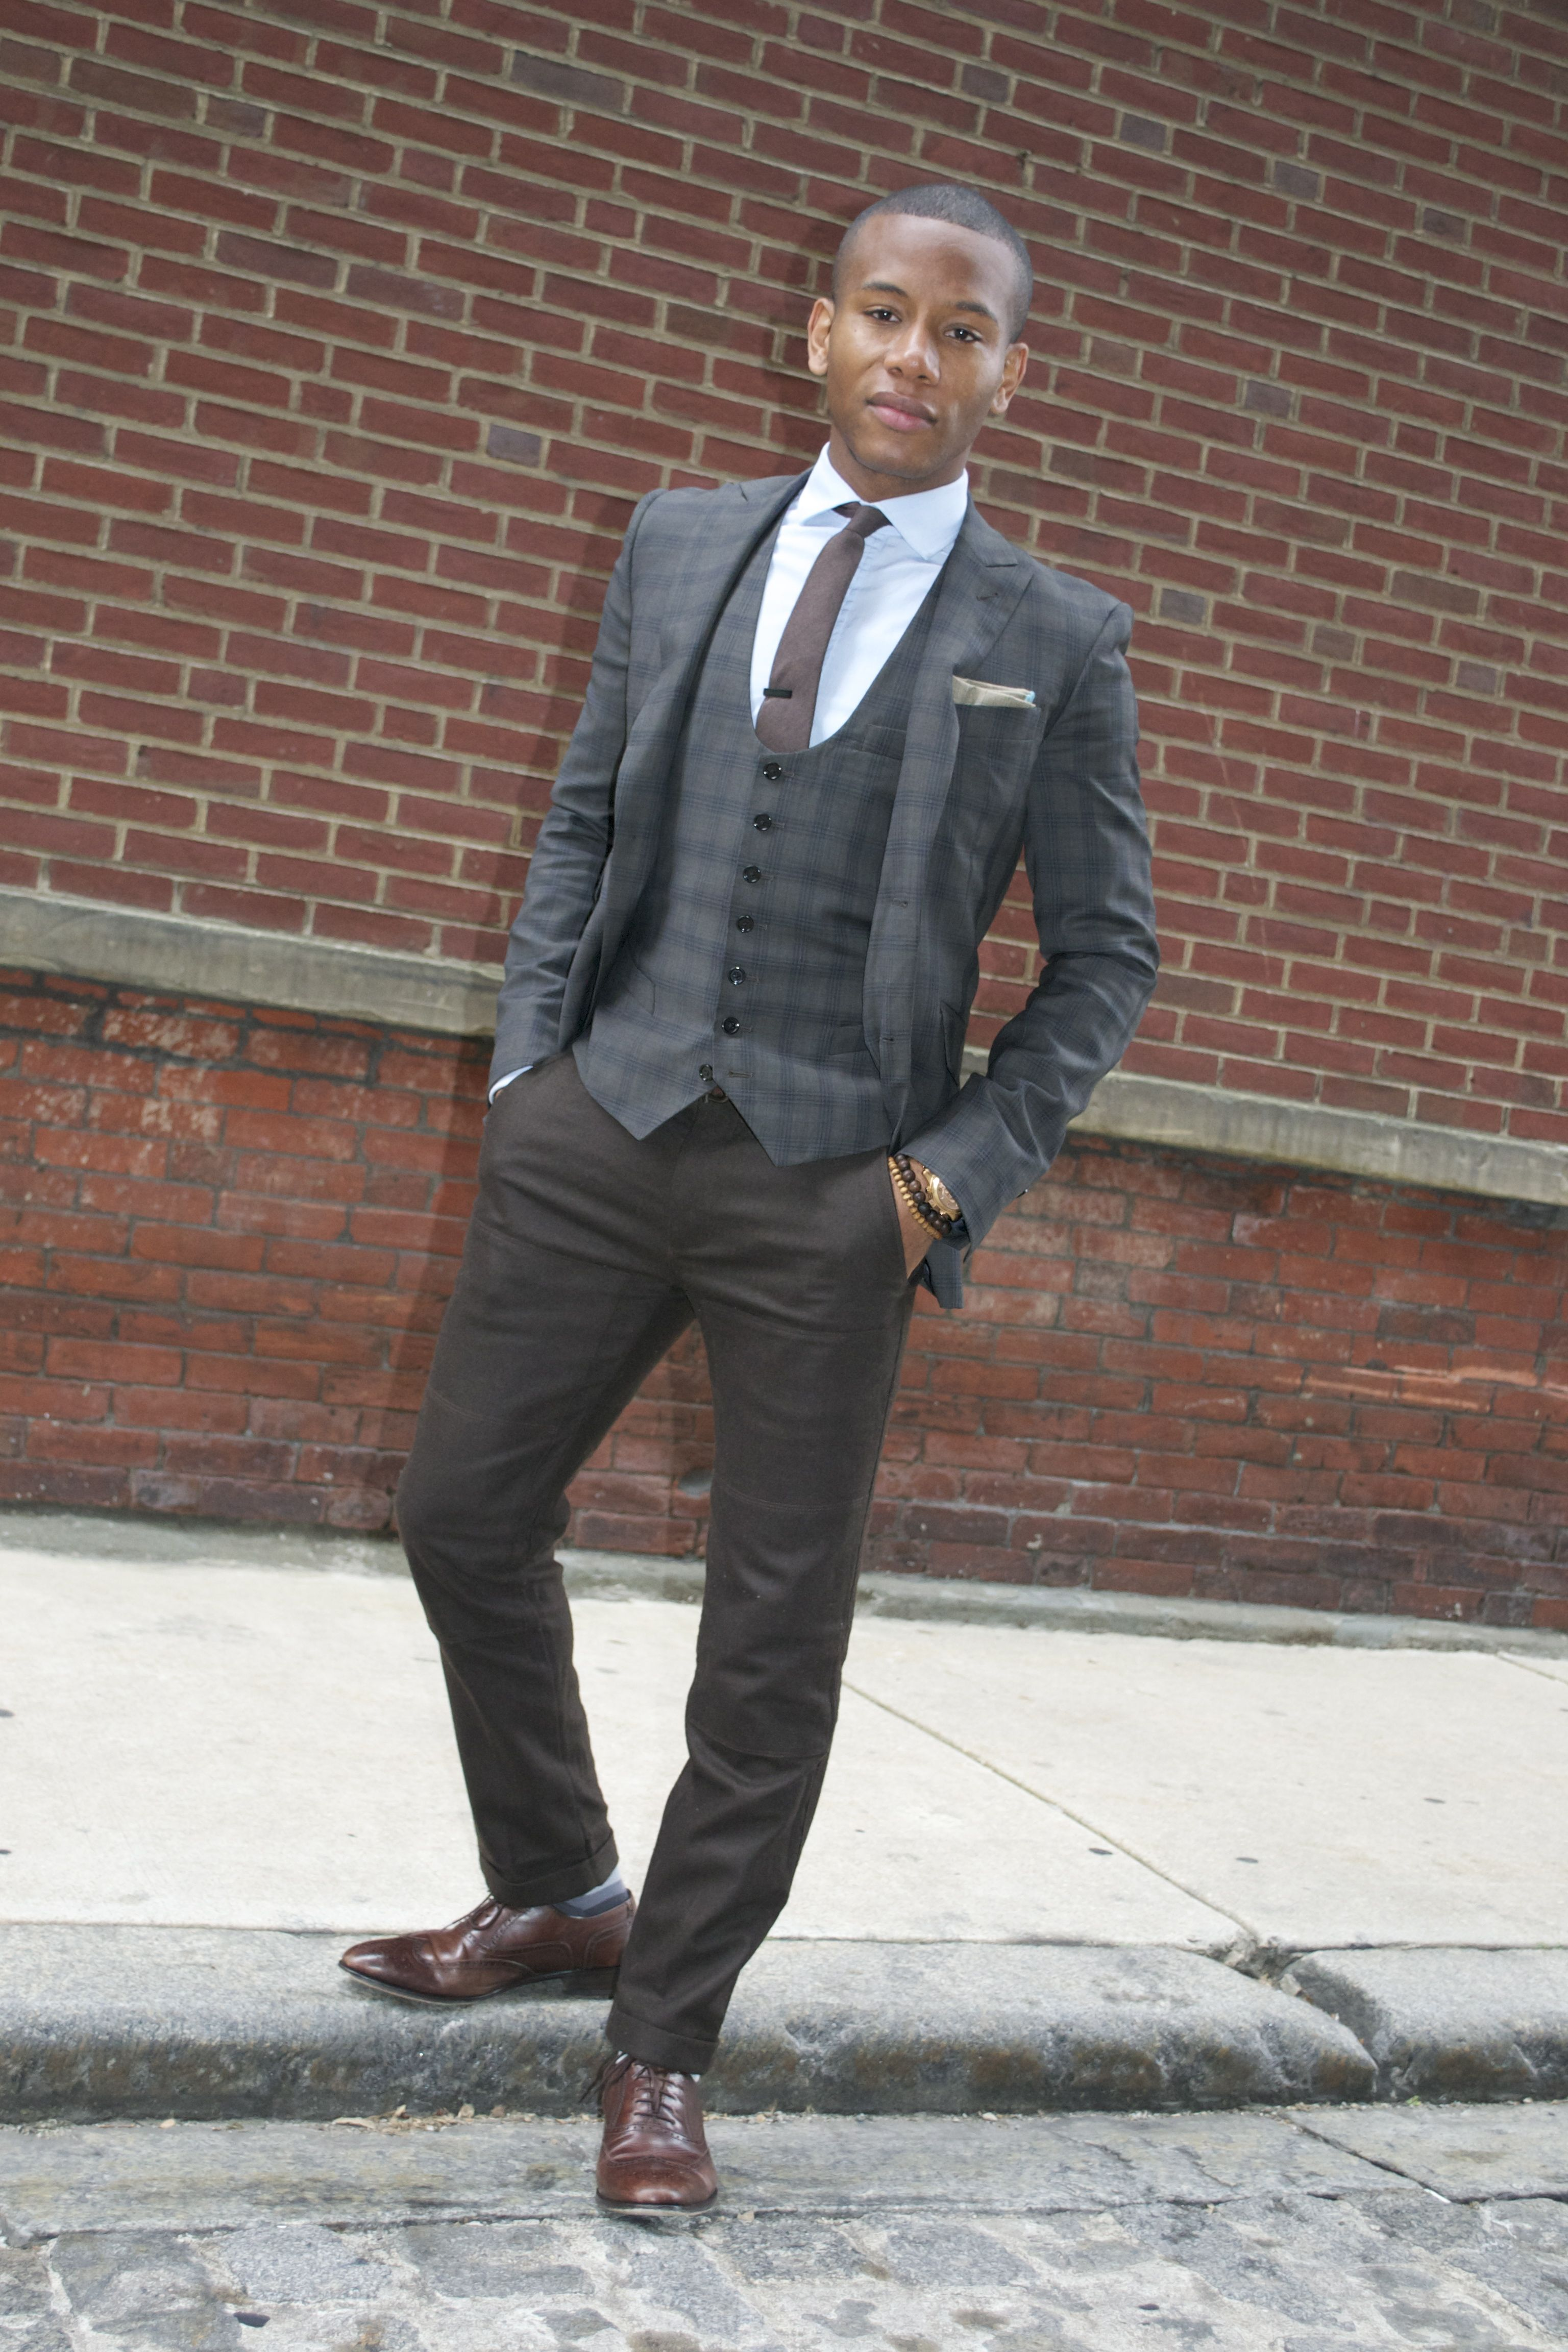 Waist Coat & Suit Jacket by @Indochino (Baltimore Buzz Olive